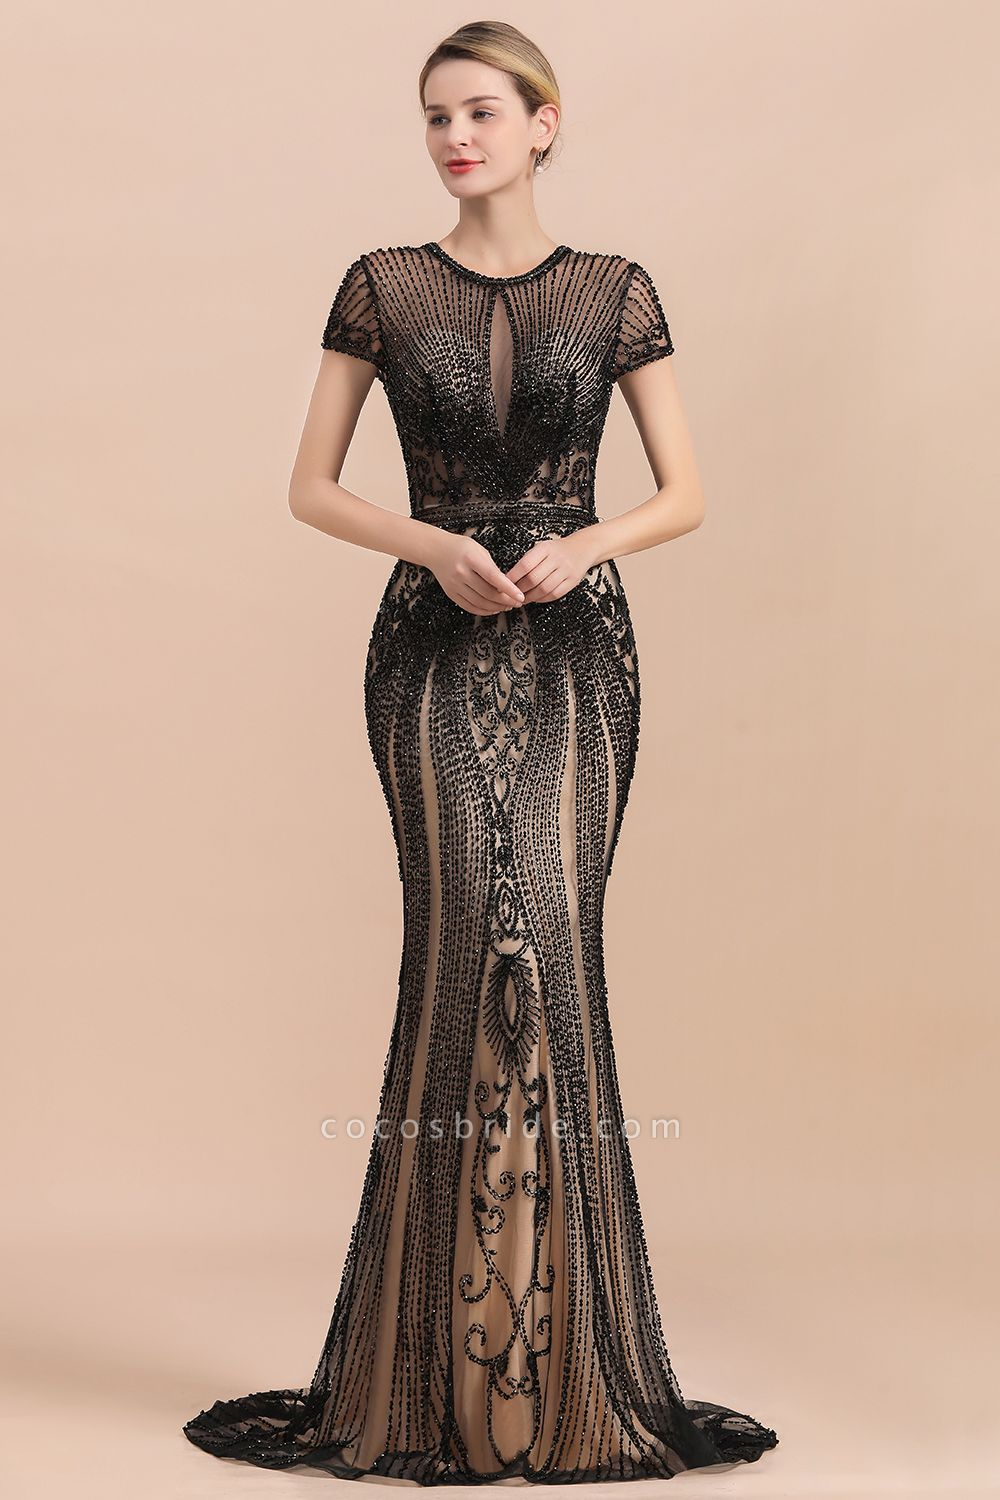 Luxury Black Beaded Mermaid Prom Dresses